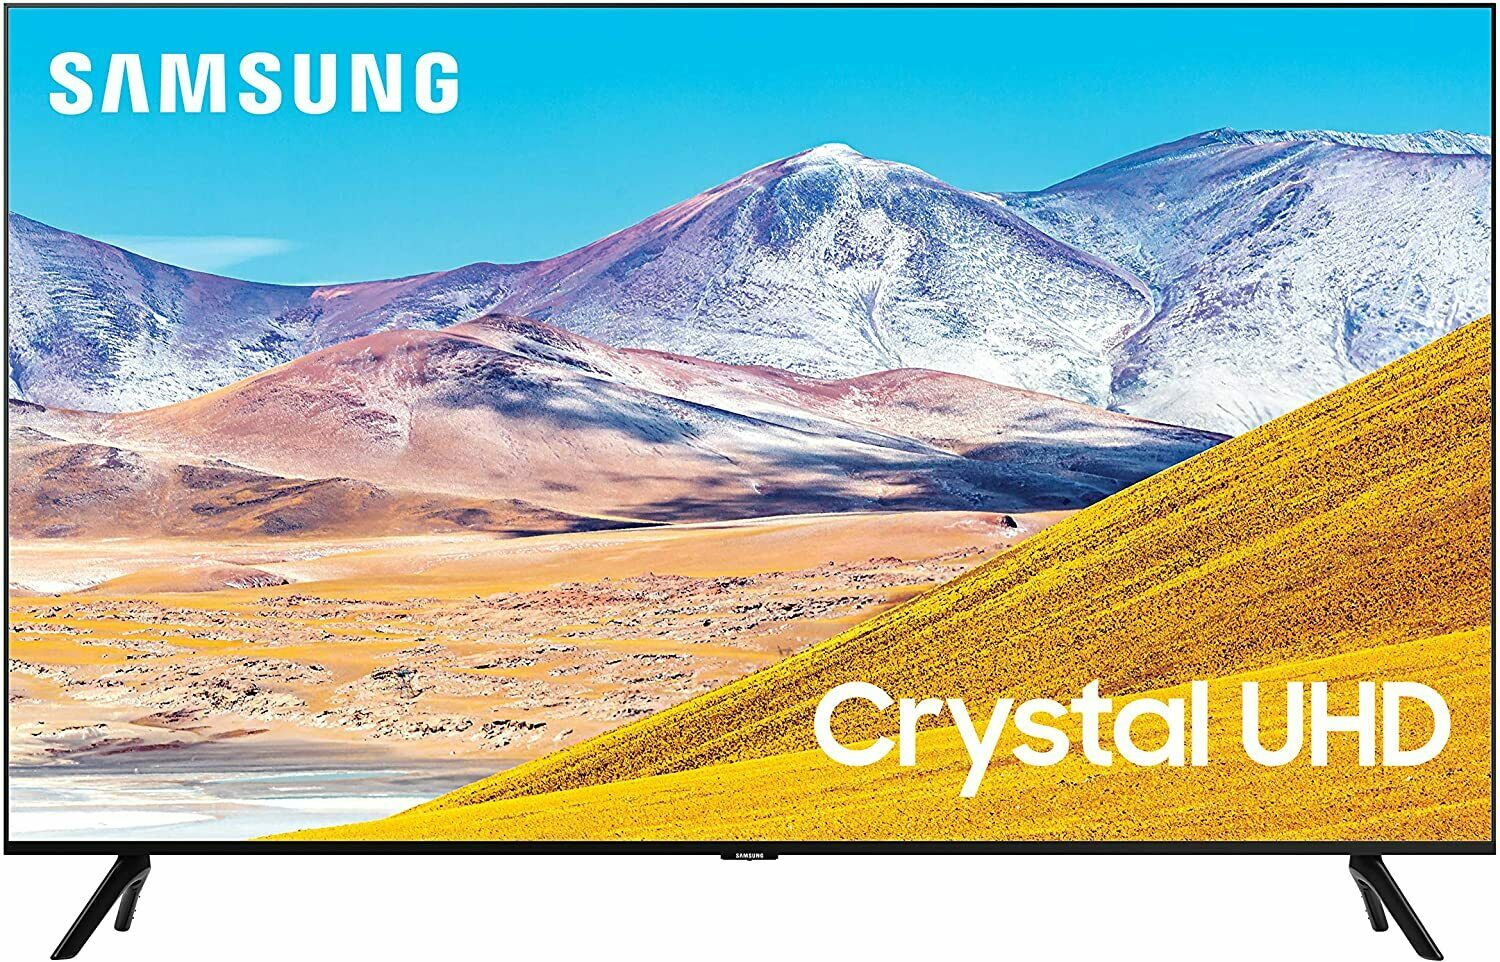 New Samsung 85' TU8000 Series Crystal UHD 4K TV UN85TU8000TA LOCAL PICKUP ONLY. Available Now for 1499.00